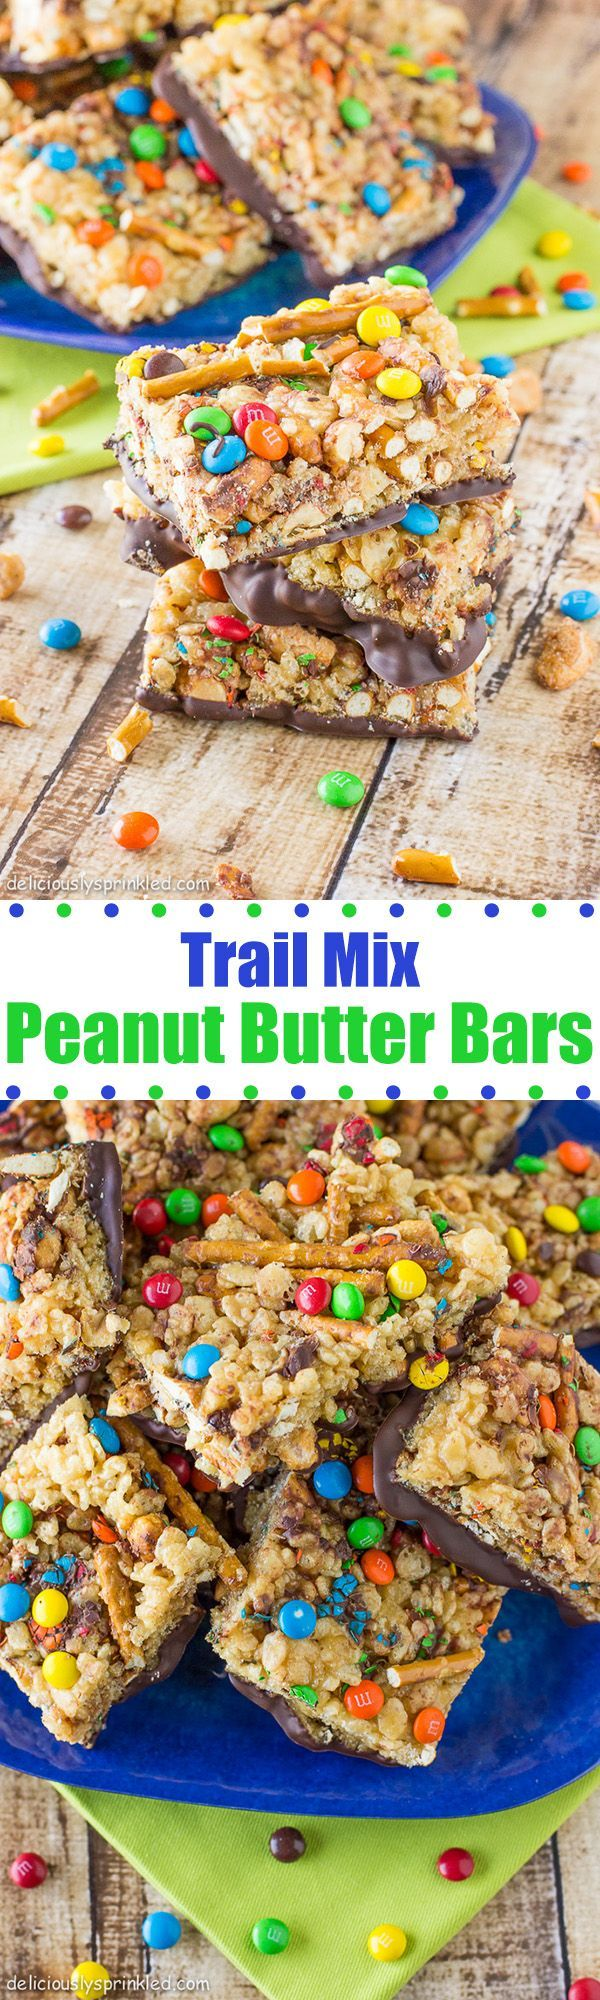 Trail Mix Peanut Butter Bars- makes the perfect sweet & salty snack!